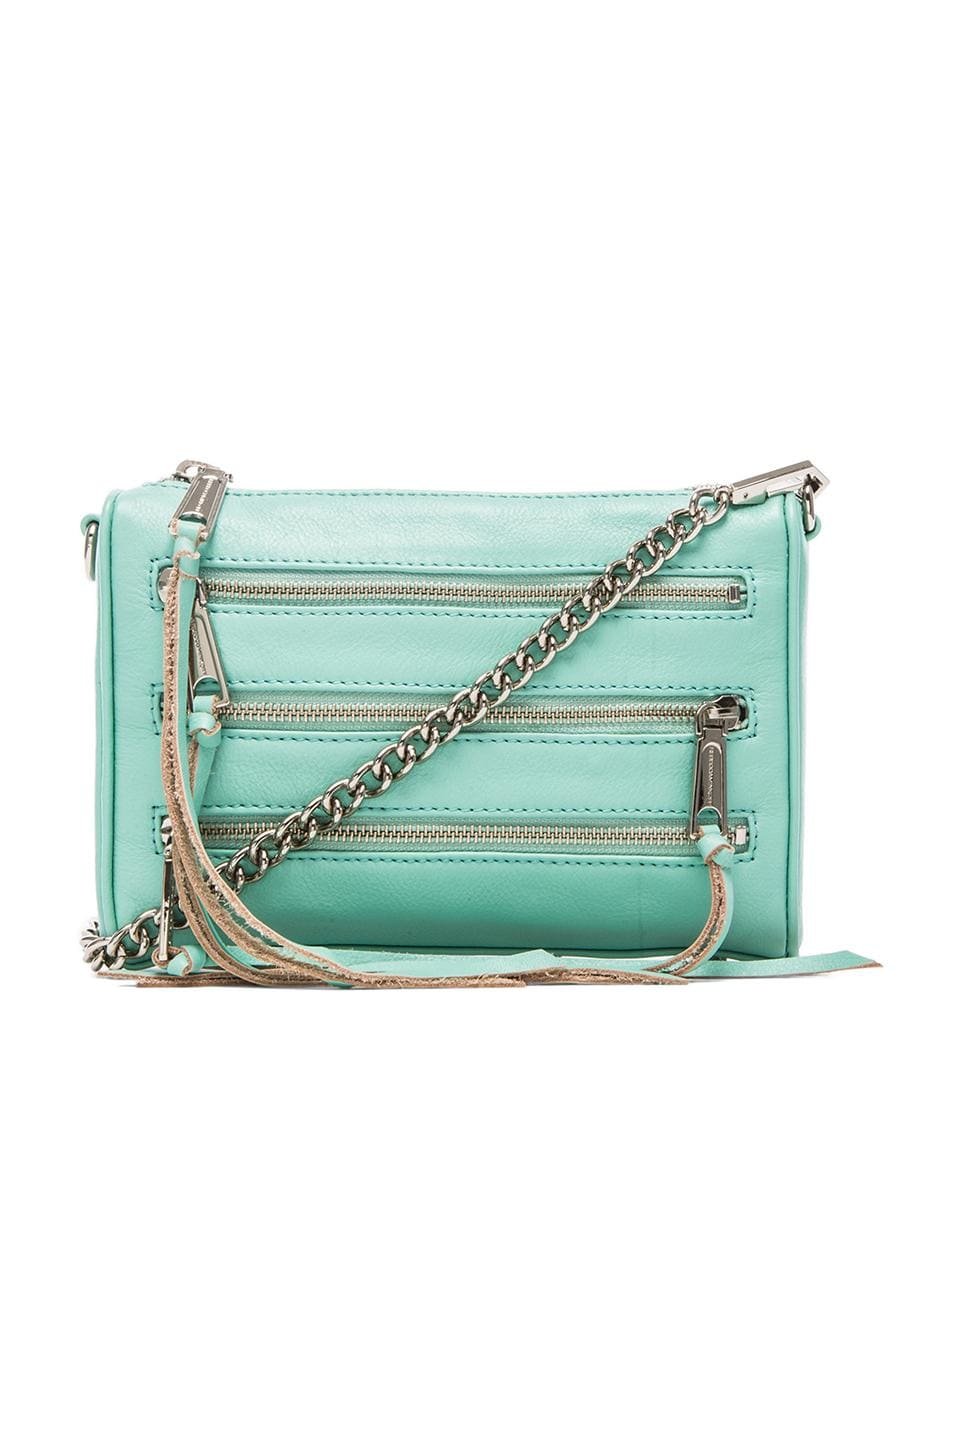 Rebecca Minkoff Mini 5 Zip in Minty